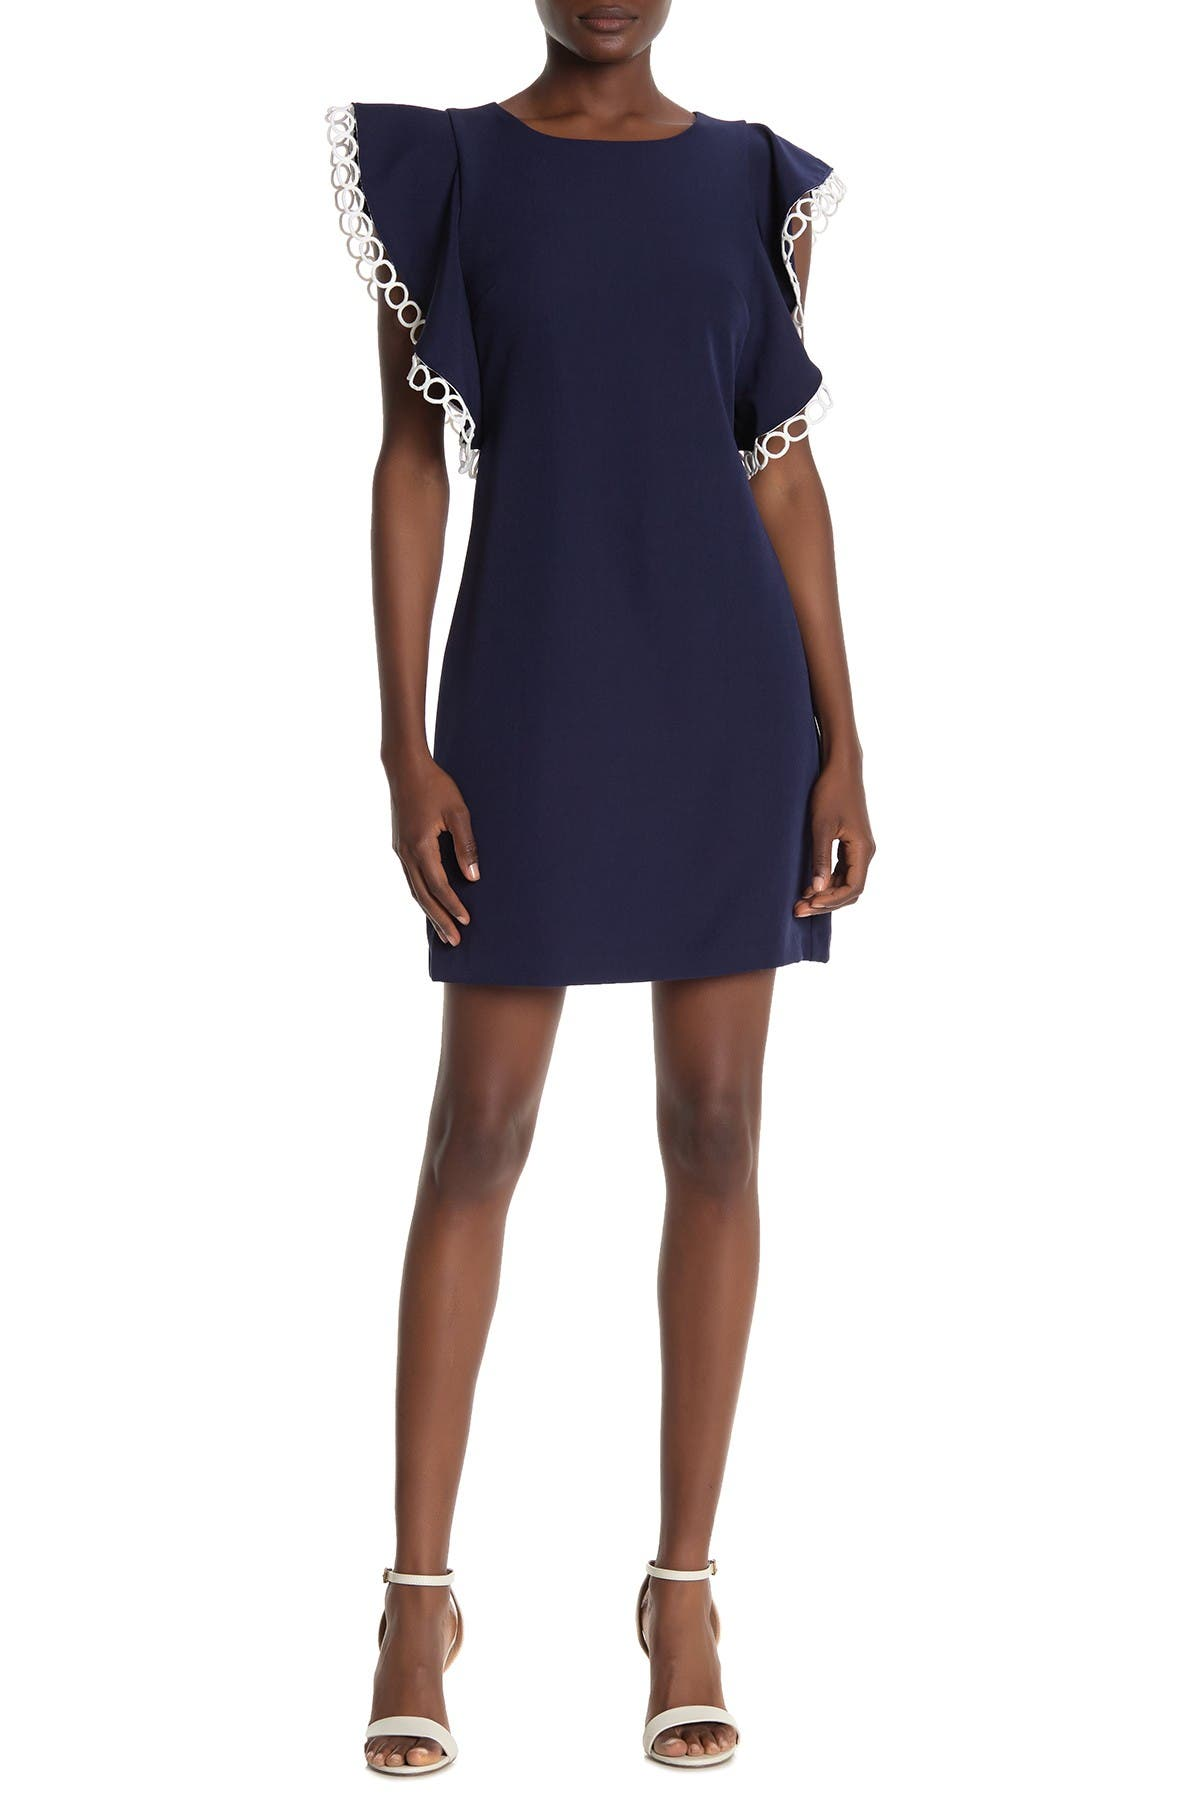 Image of Laundry By Shelli Segal Ruffle Lace Eyele Trim Dress